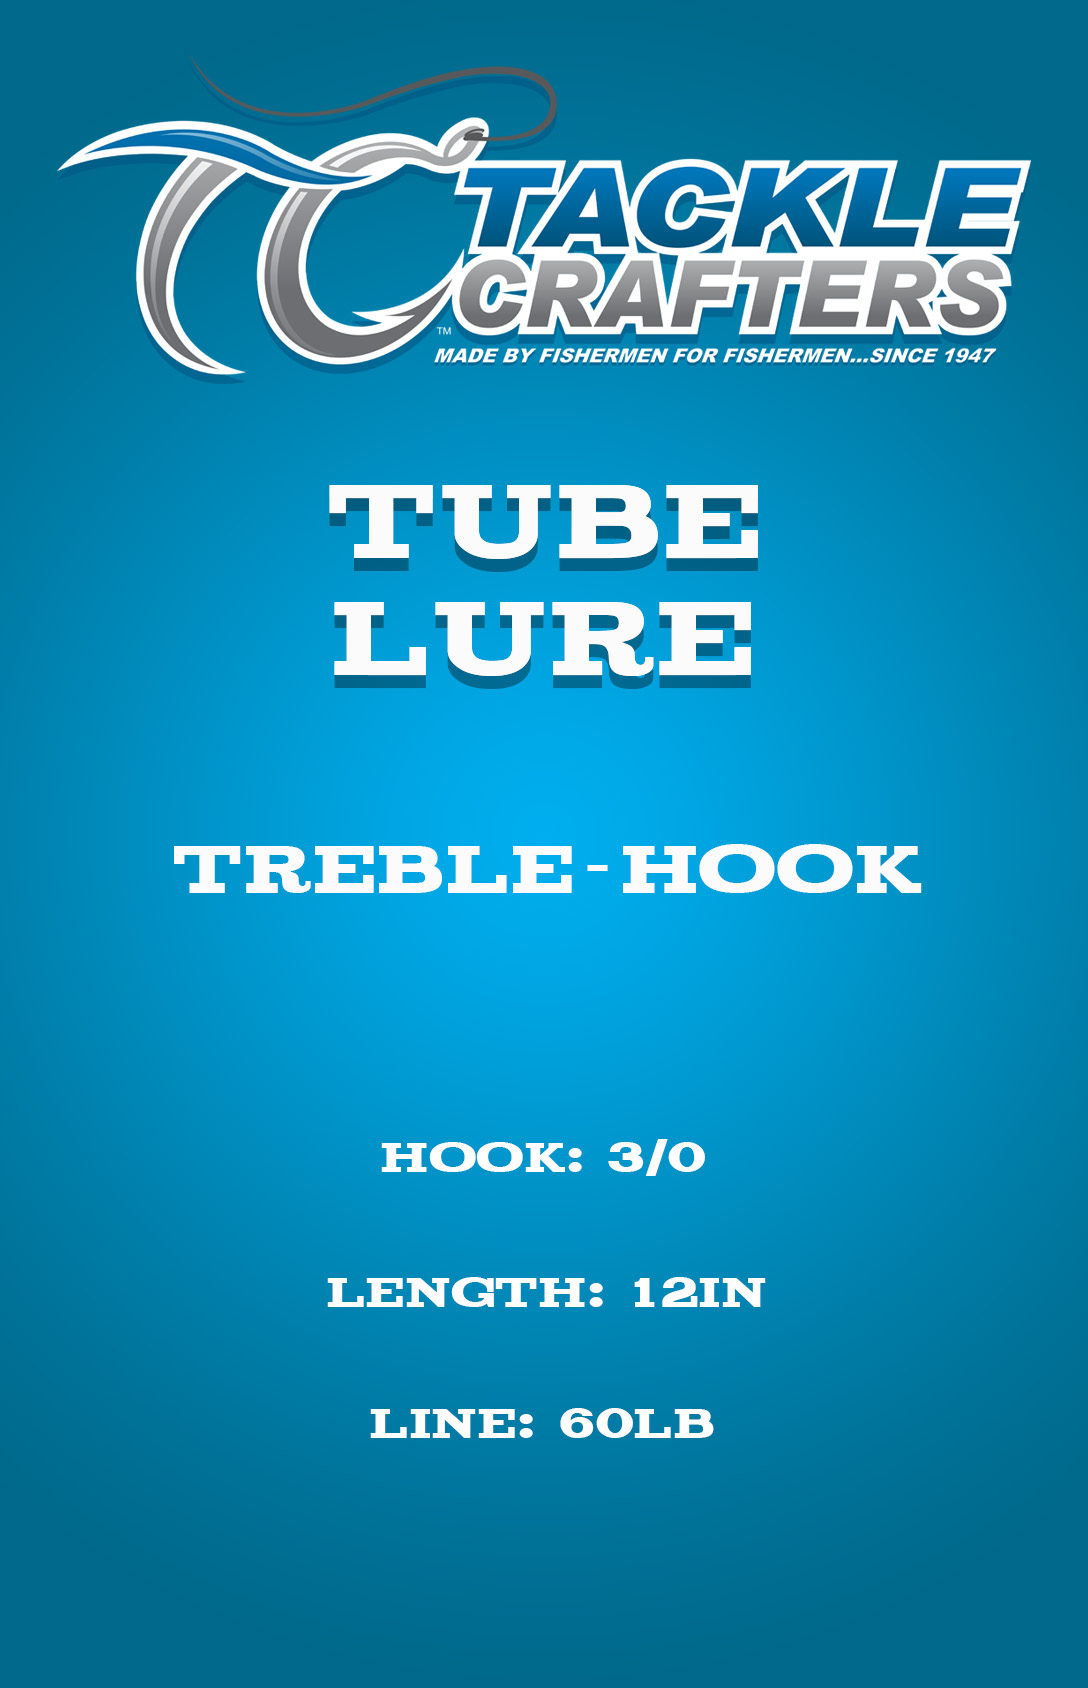 Tube_Lure _Treble